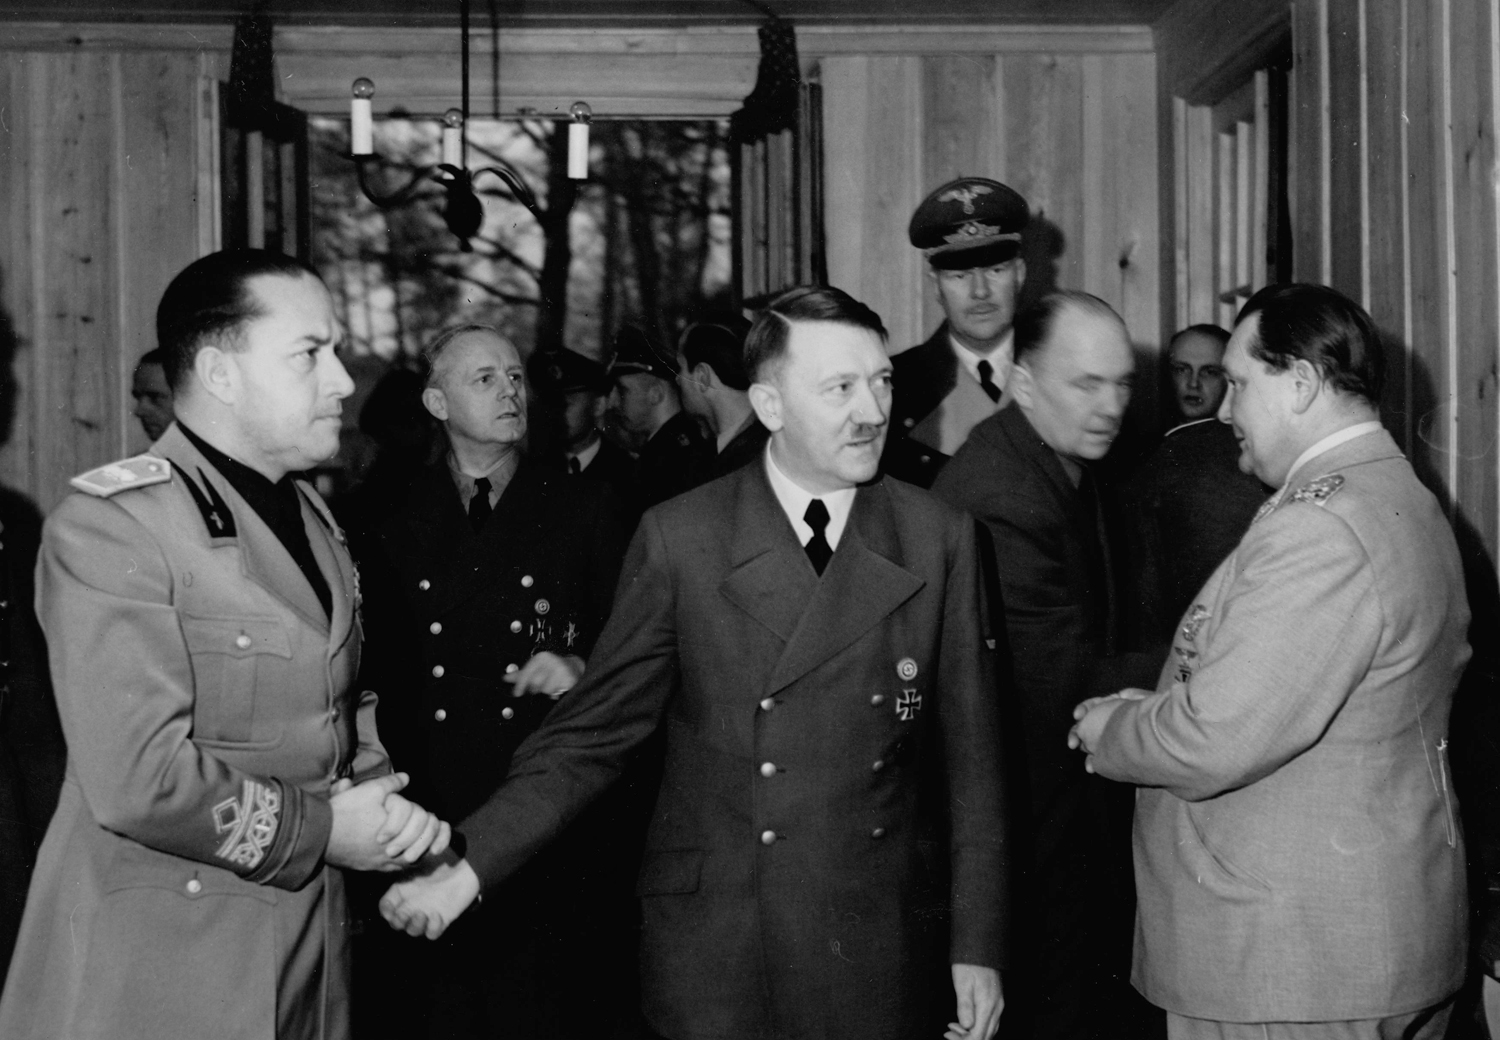 Adolf Hitler meets Italian foreign affairs minister Galeazzo Ciano at the Wolfsschanze